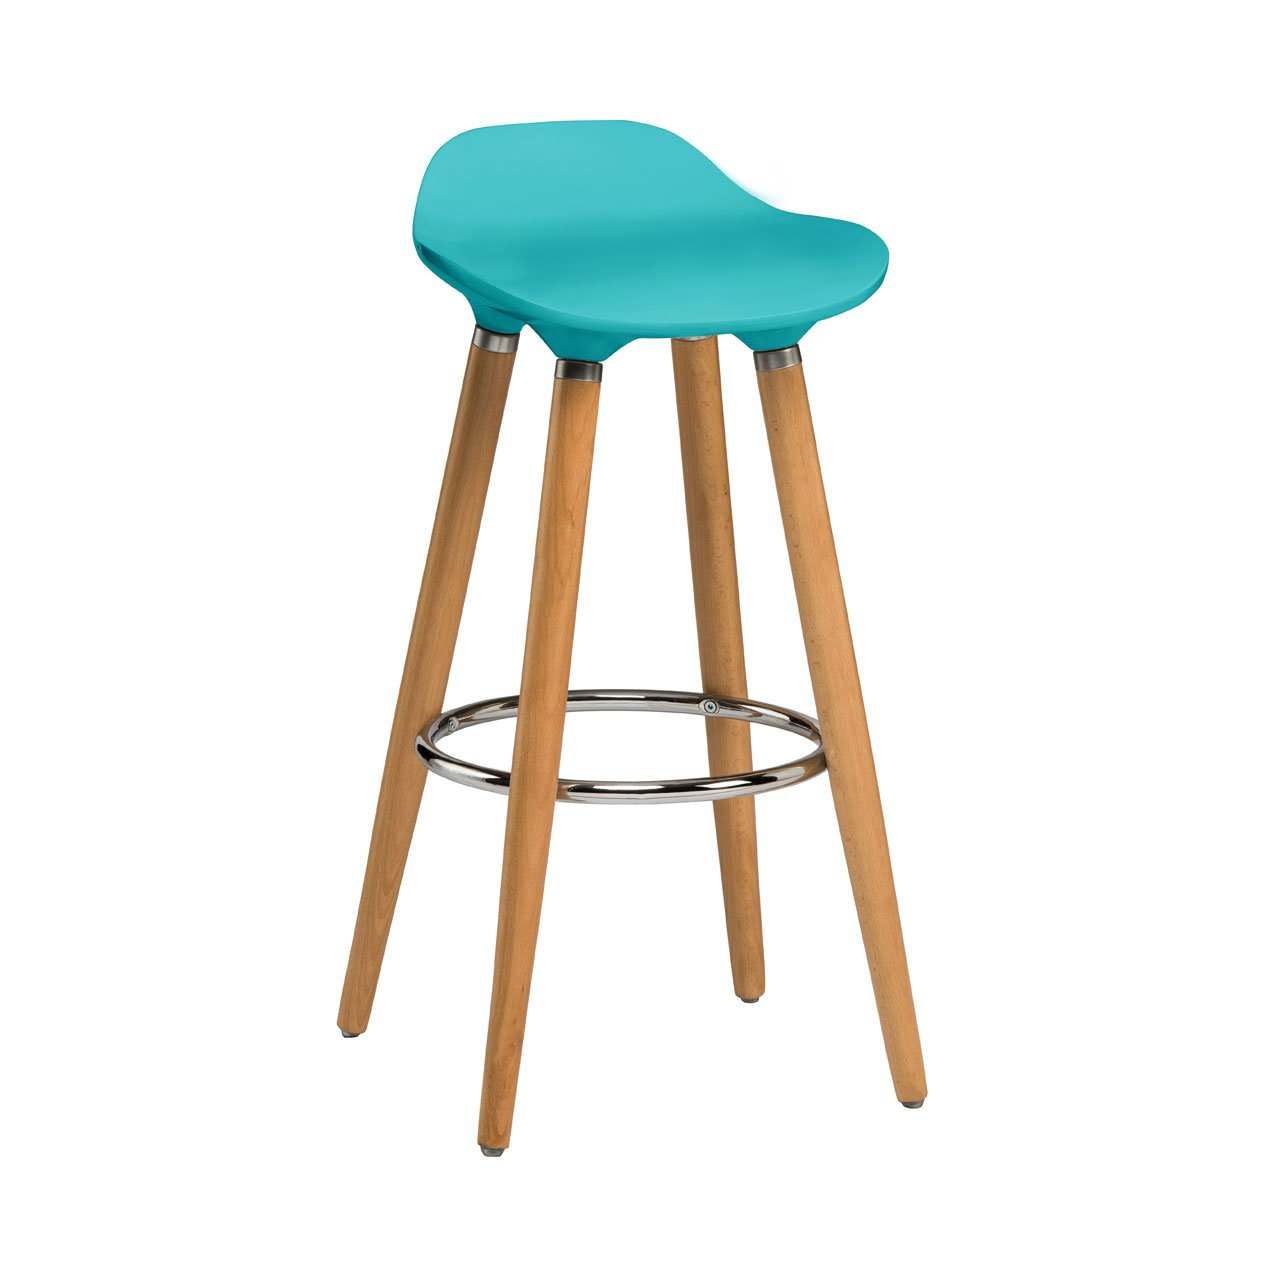 Bar Stool ABS Beech Wood Legs With Different Colour Seat Comfort Stools Aqua Blue Amazoncouk Kitchen Home